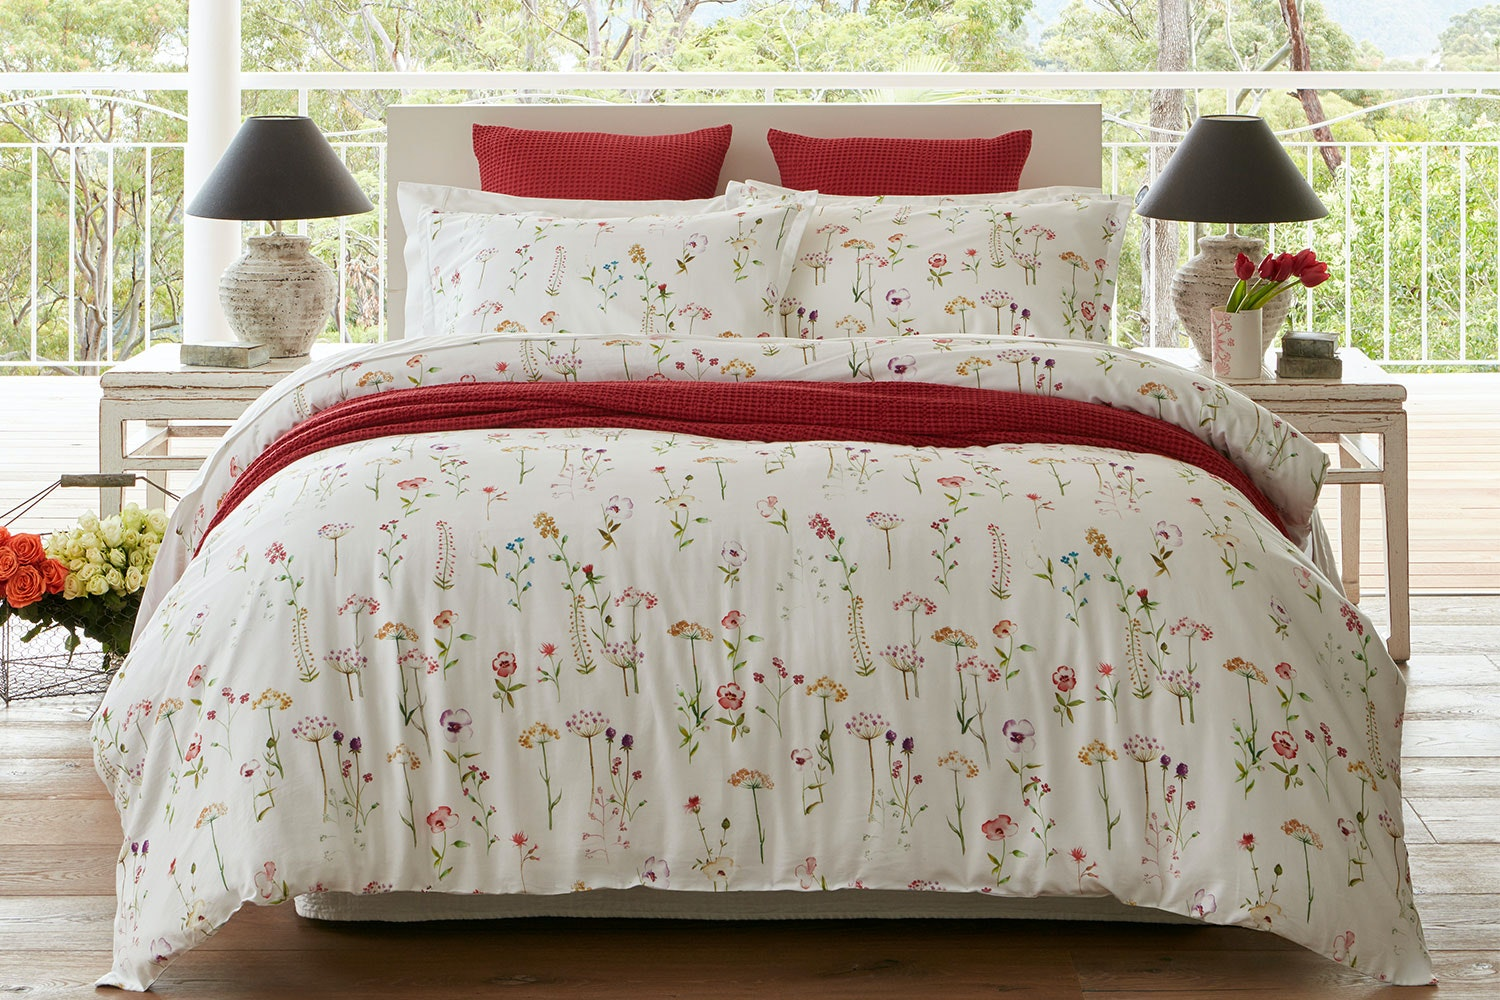 Country Garden Duvet Cover Set by Baksana